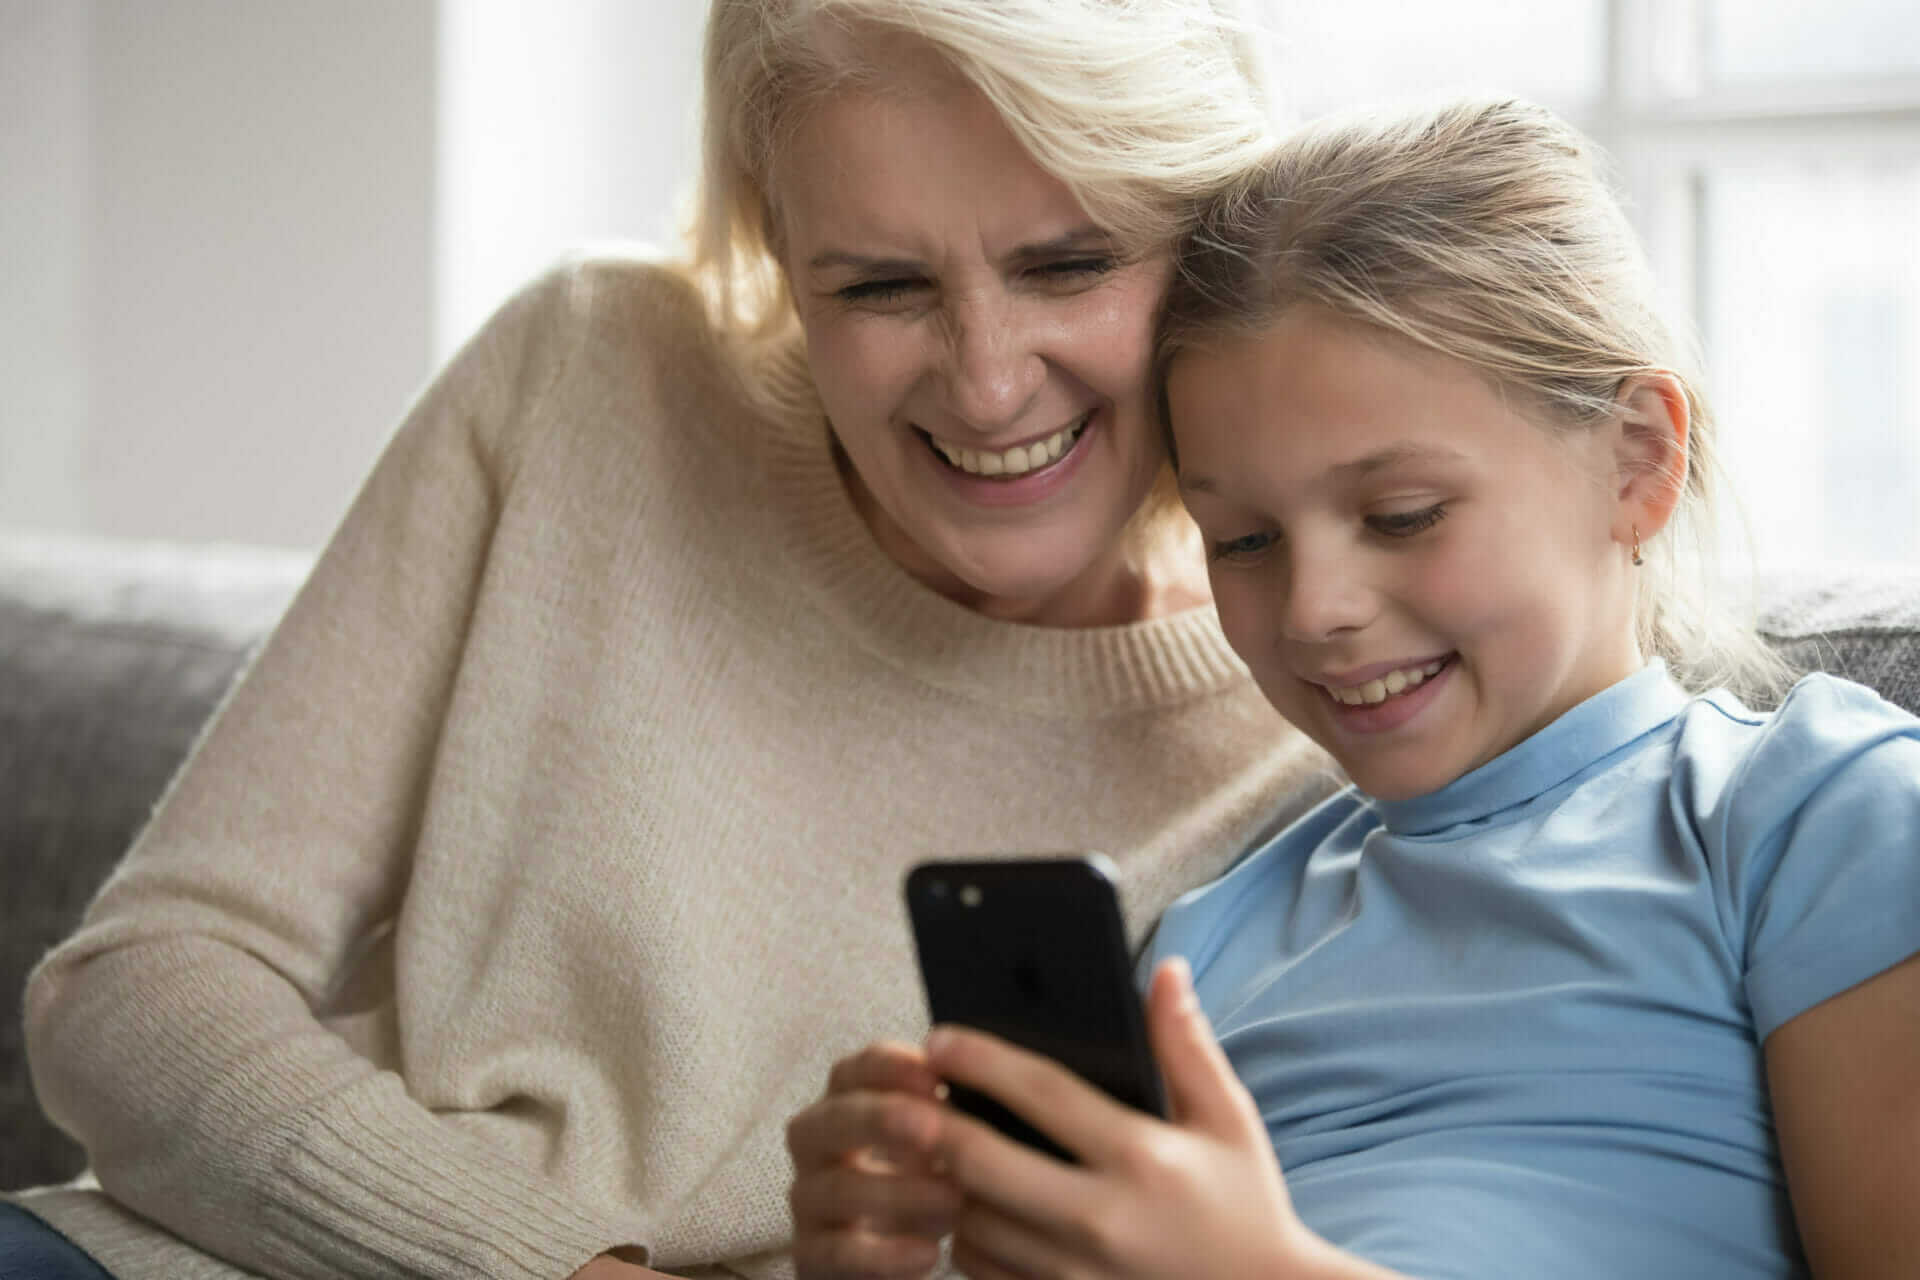 A photo of a woman and child looking at a mobile phone screen